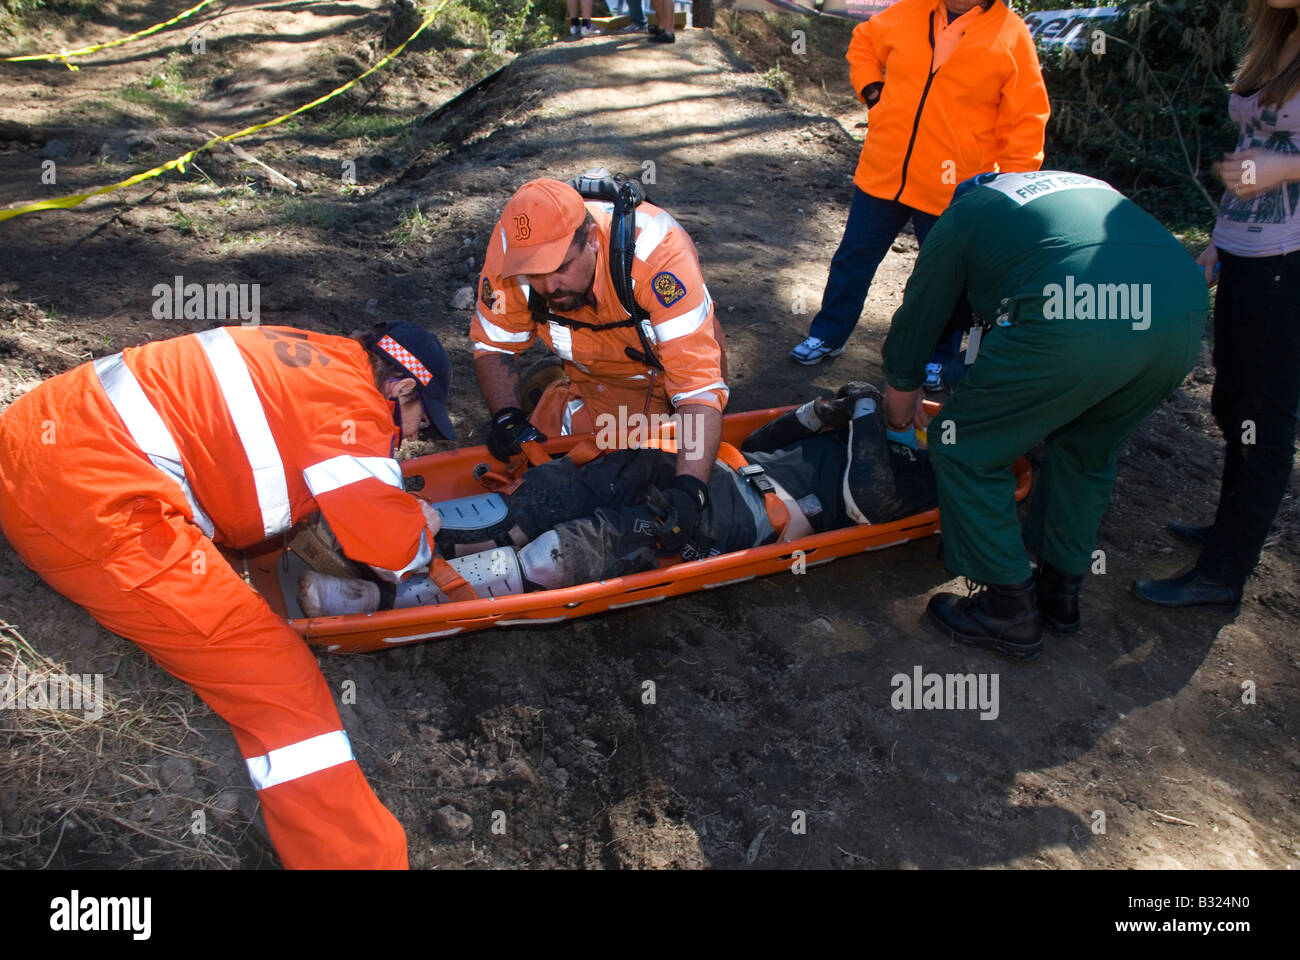 Medivac first aid and extraction of mountain bike rider - Stock Image